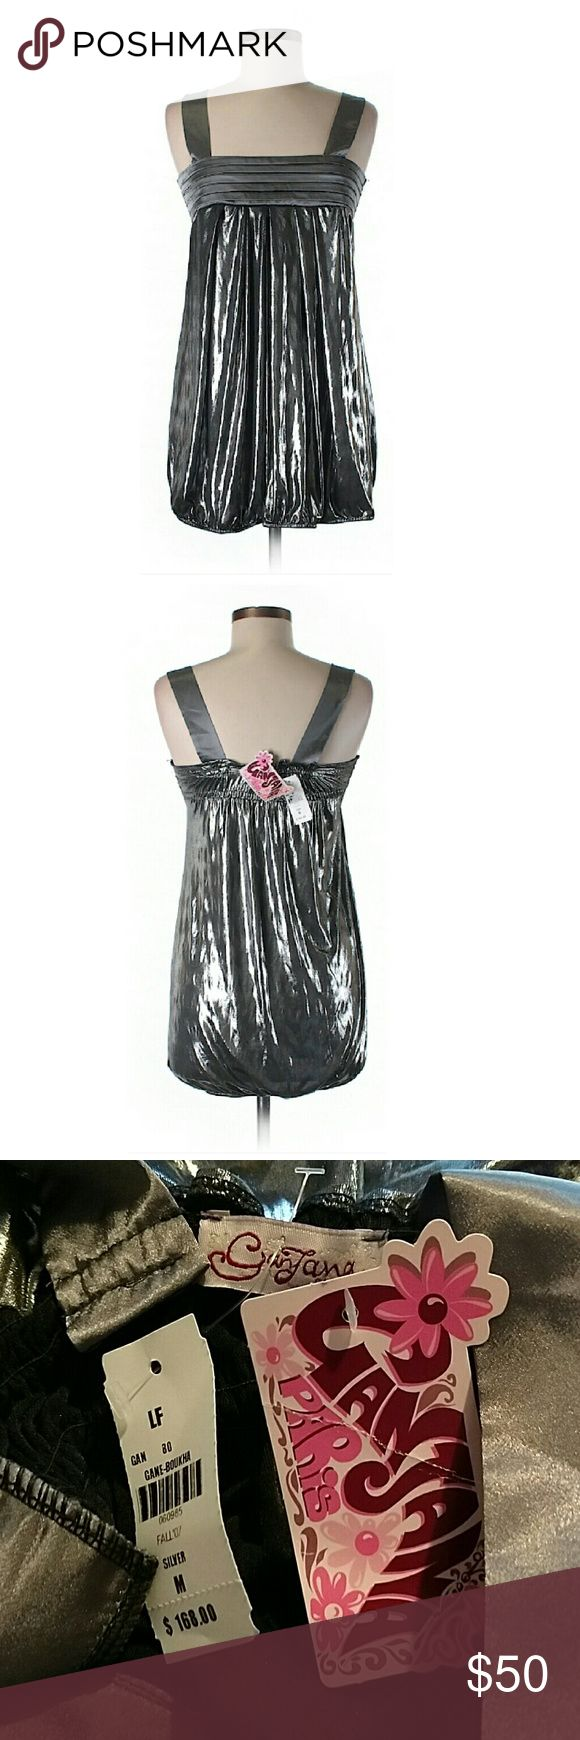 """Metallic Gunmetal Gray Cocktail Dress NWT. 28"""" chest, 23"""" long. All pictures are of the actual item that you will receive. Smoke-free home. LF Dresses Midi"""